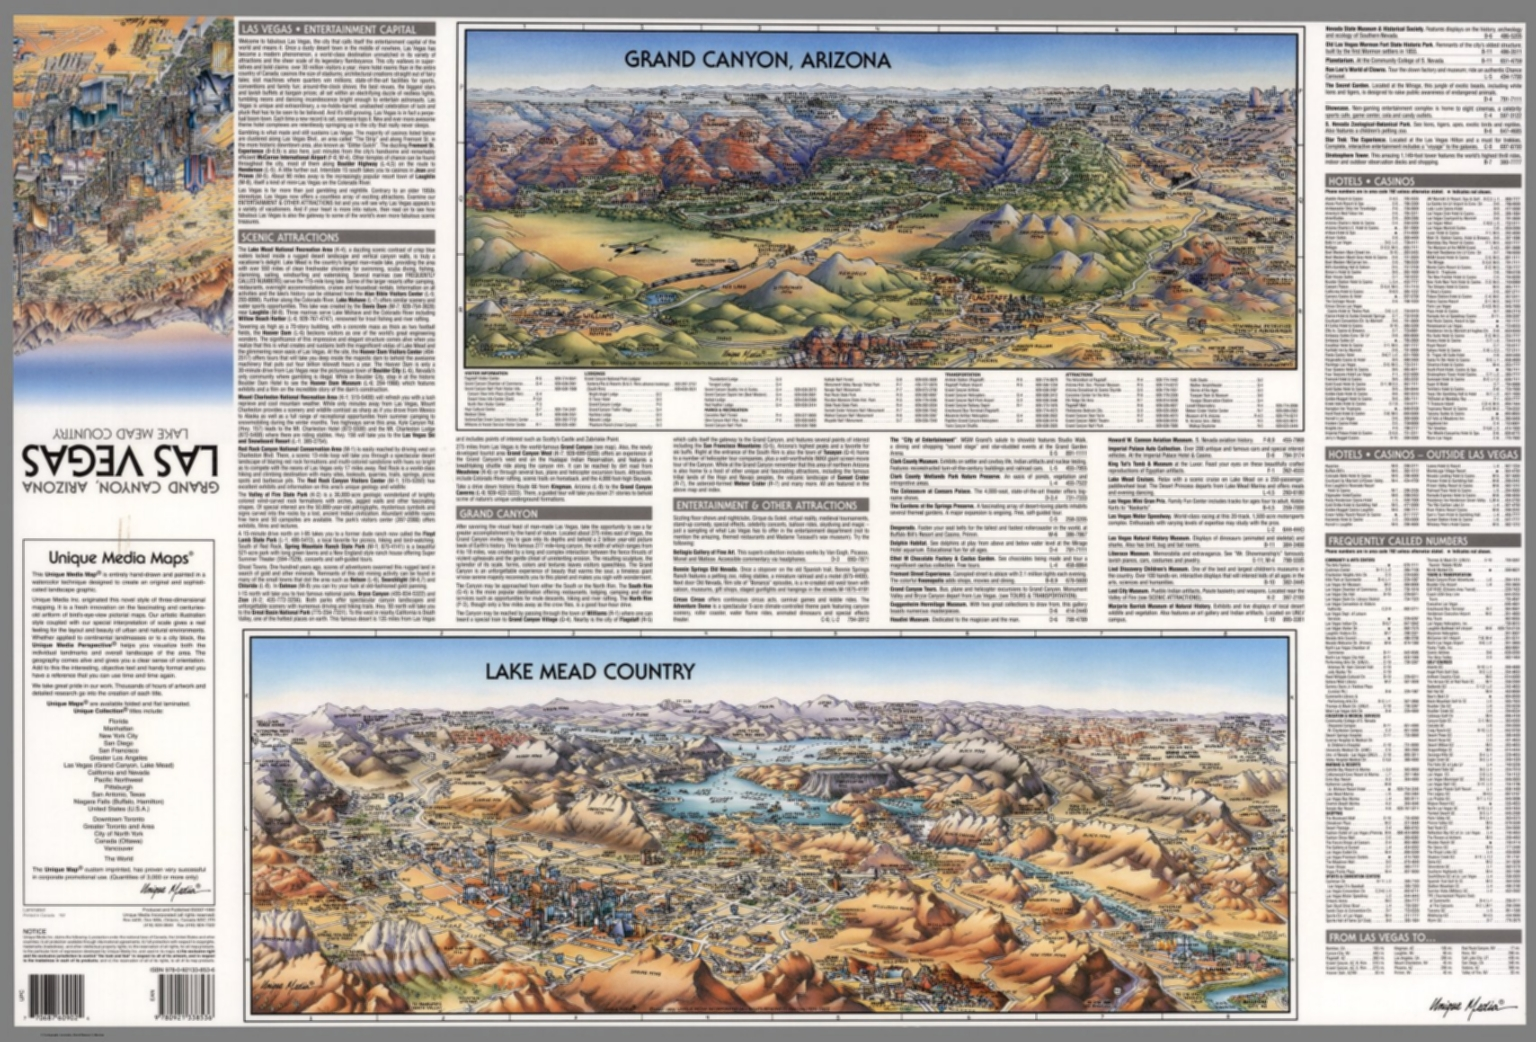 grand canyon arizona lake mead country text tourist information david rumsey historical map collection. grand canyon arizona lake mead country text tourist